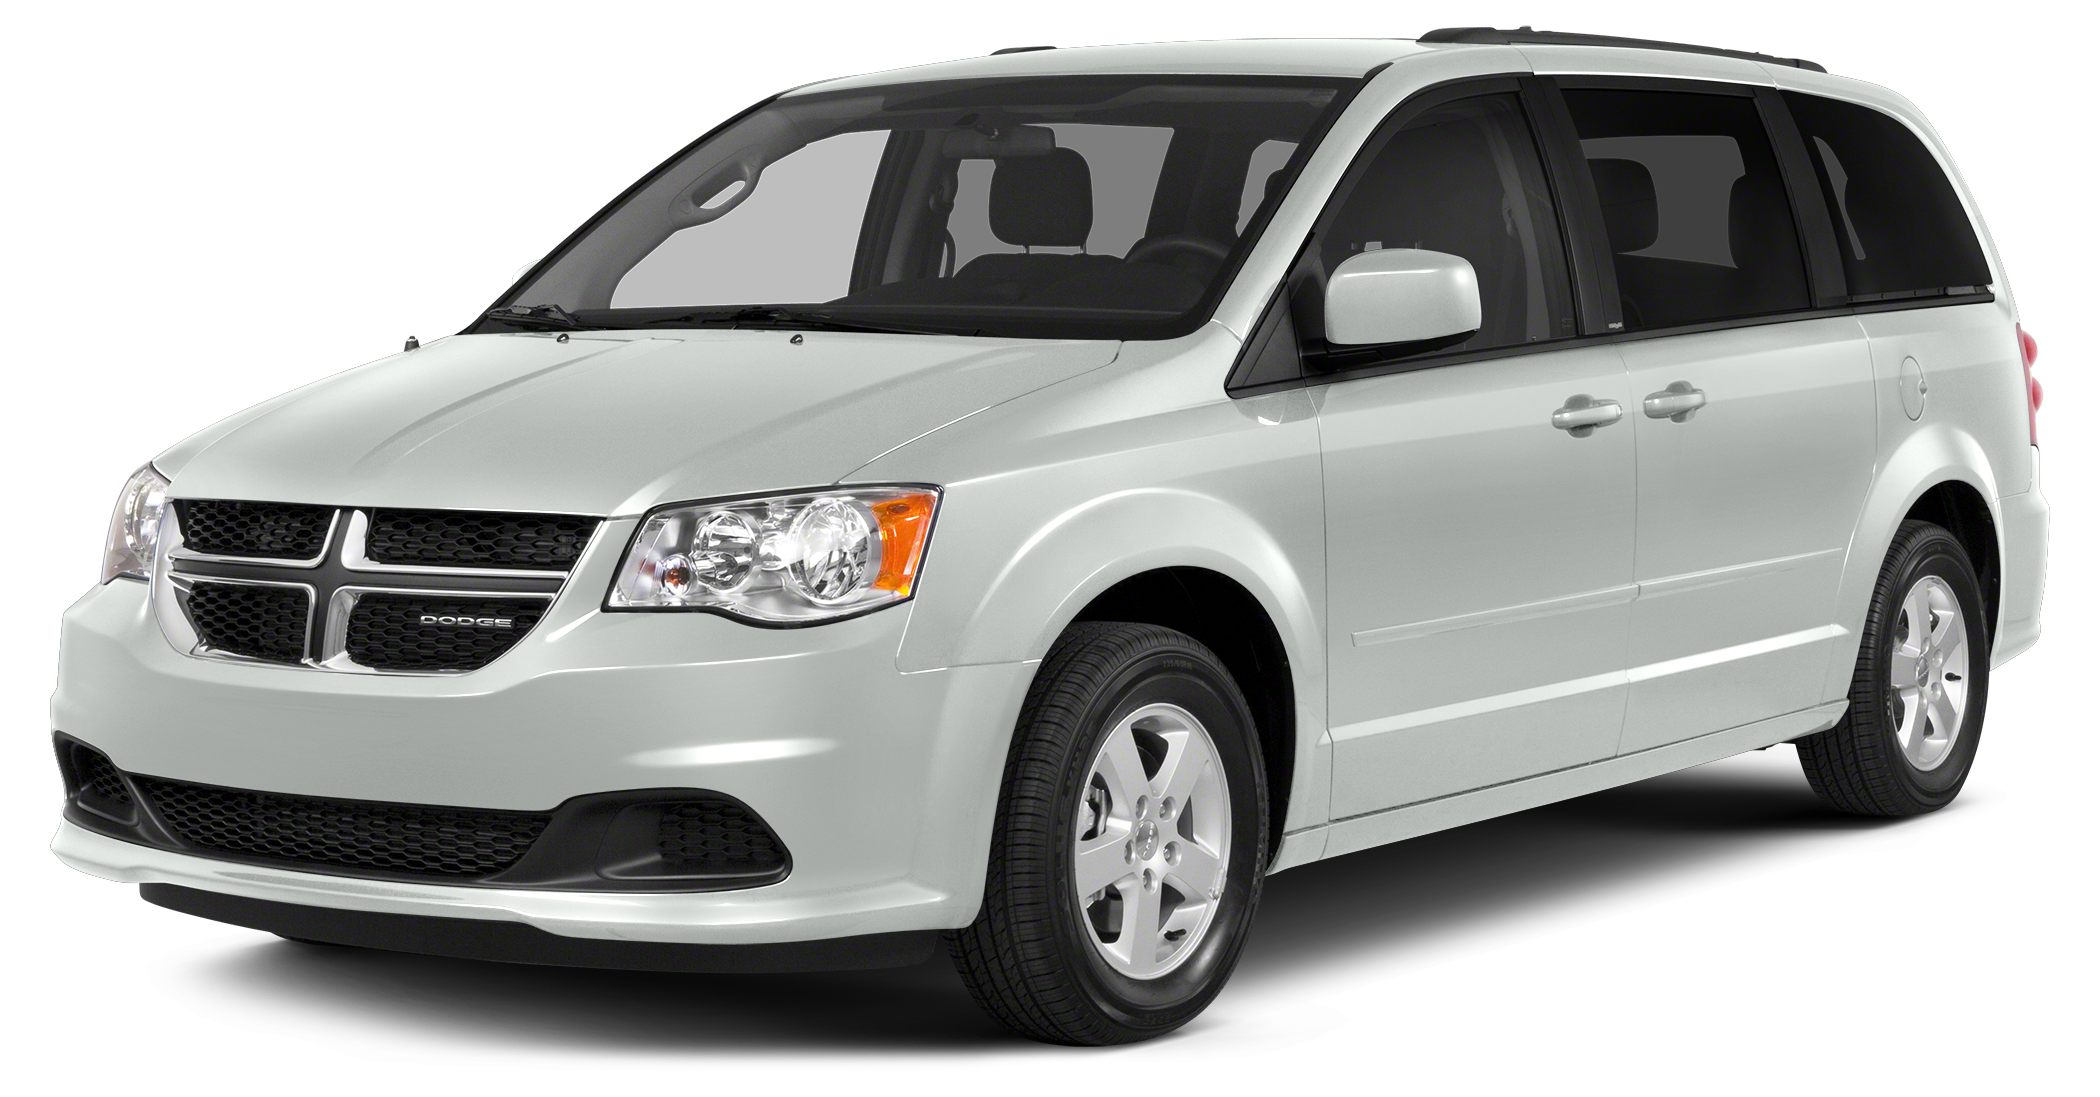 2015 Dodge Grand Caravan SXT Miles 40227Color White Stock U2317 VIN 2C4RDGCG0FR733838